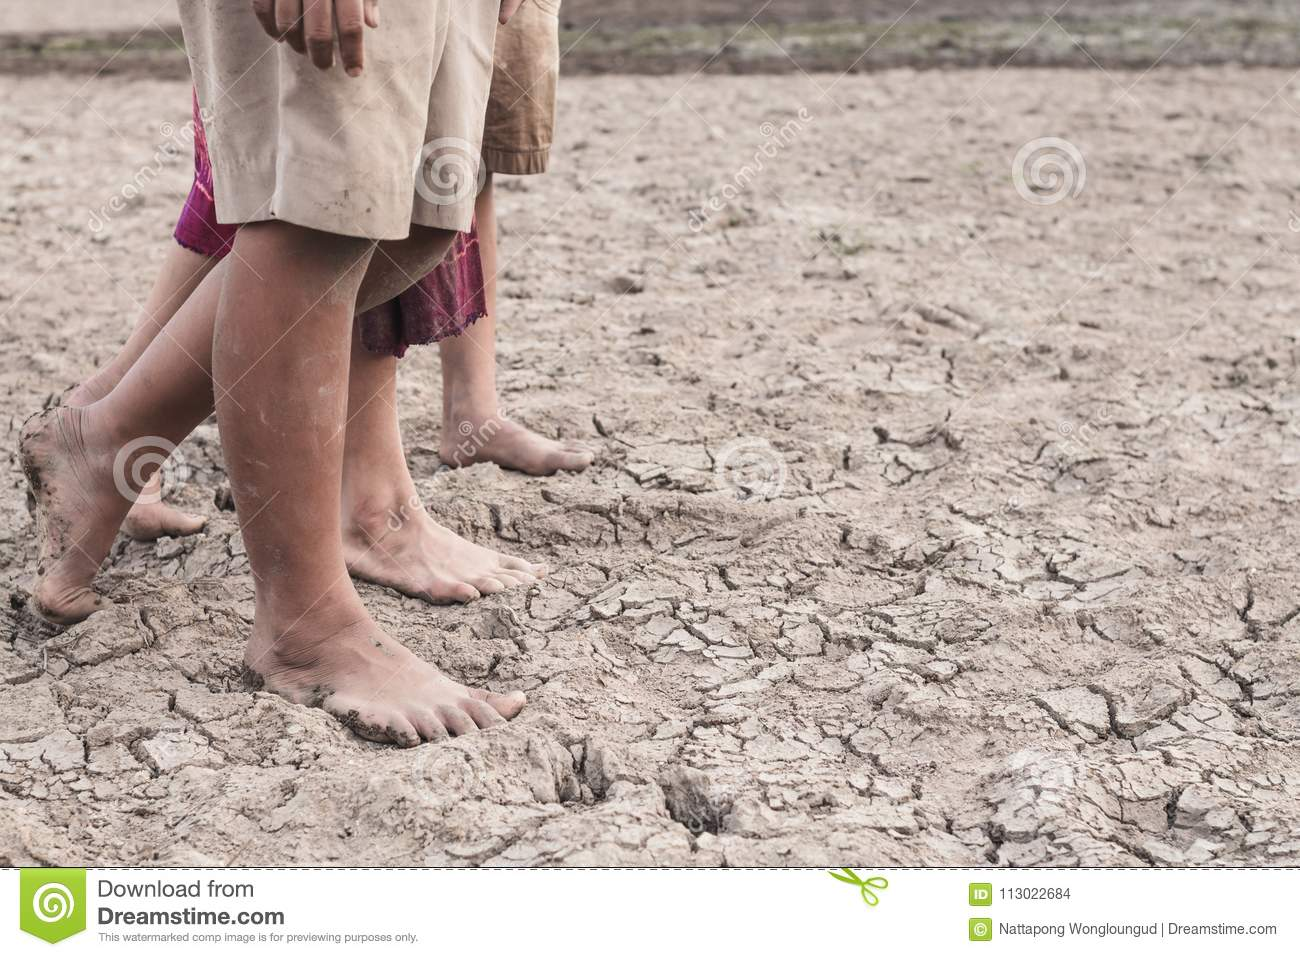 Drought caused by water shortage.